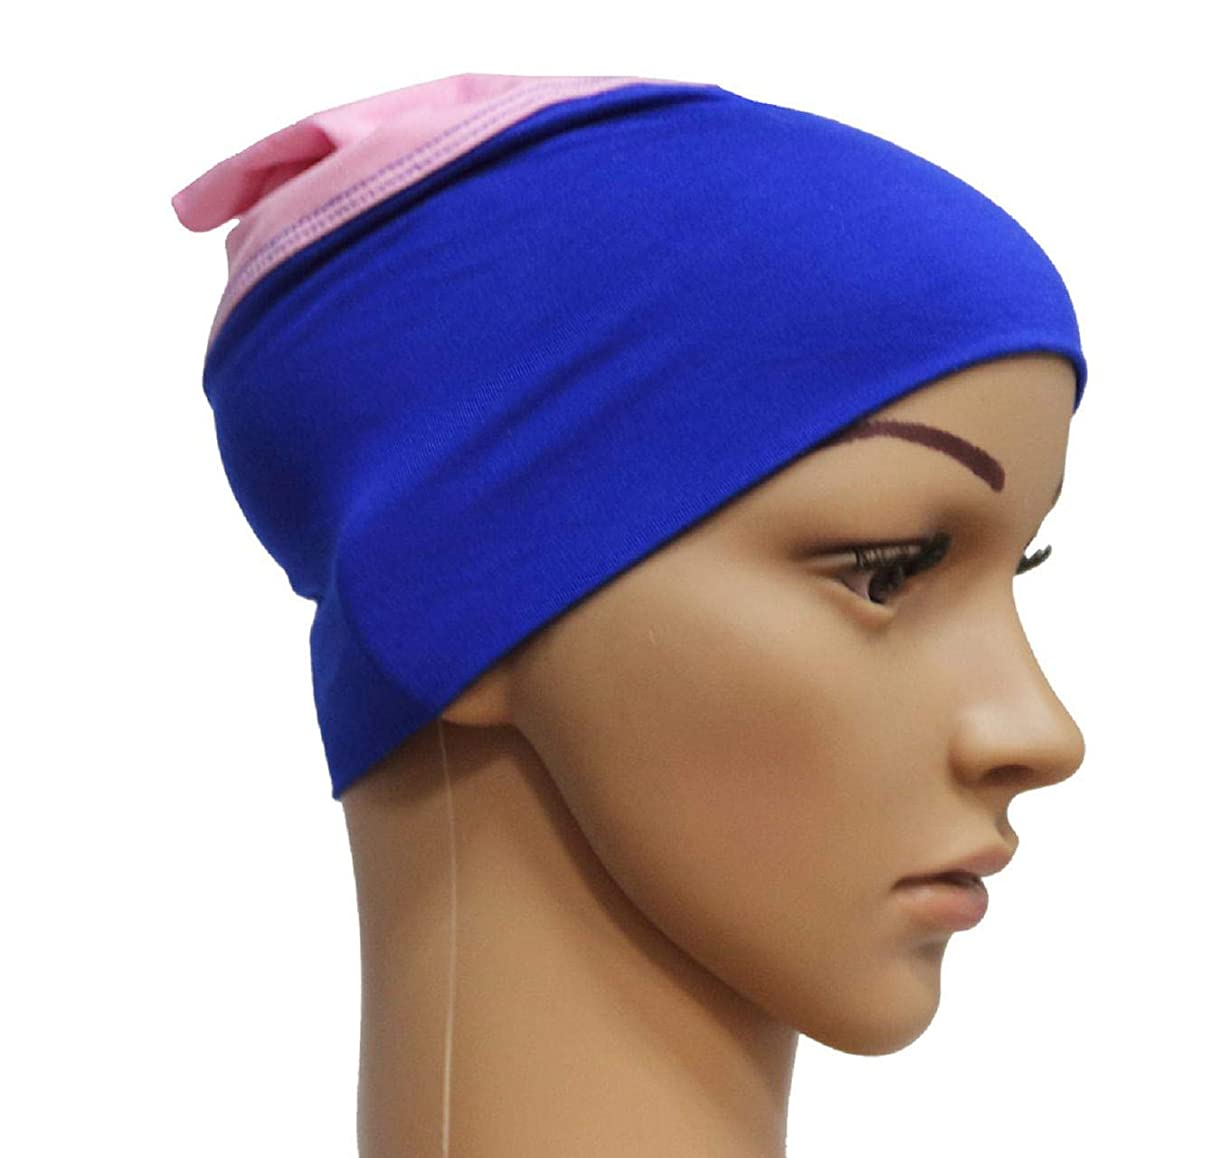 Barlingrock Women Winter Warm Caps, 2 in 1 Women Muslim Stretchy Anti Hair Loss Turban Wrap Scarf Hats for Dancing, Casual, Daily, Christmas Day Wedding Banquet Tea Cocktail Party